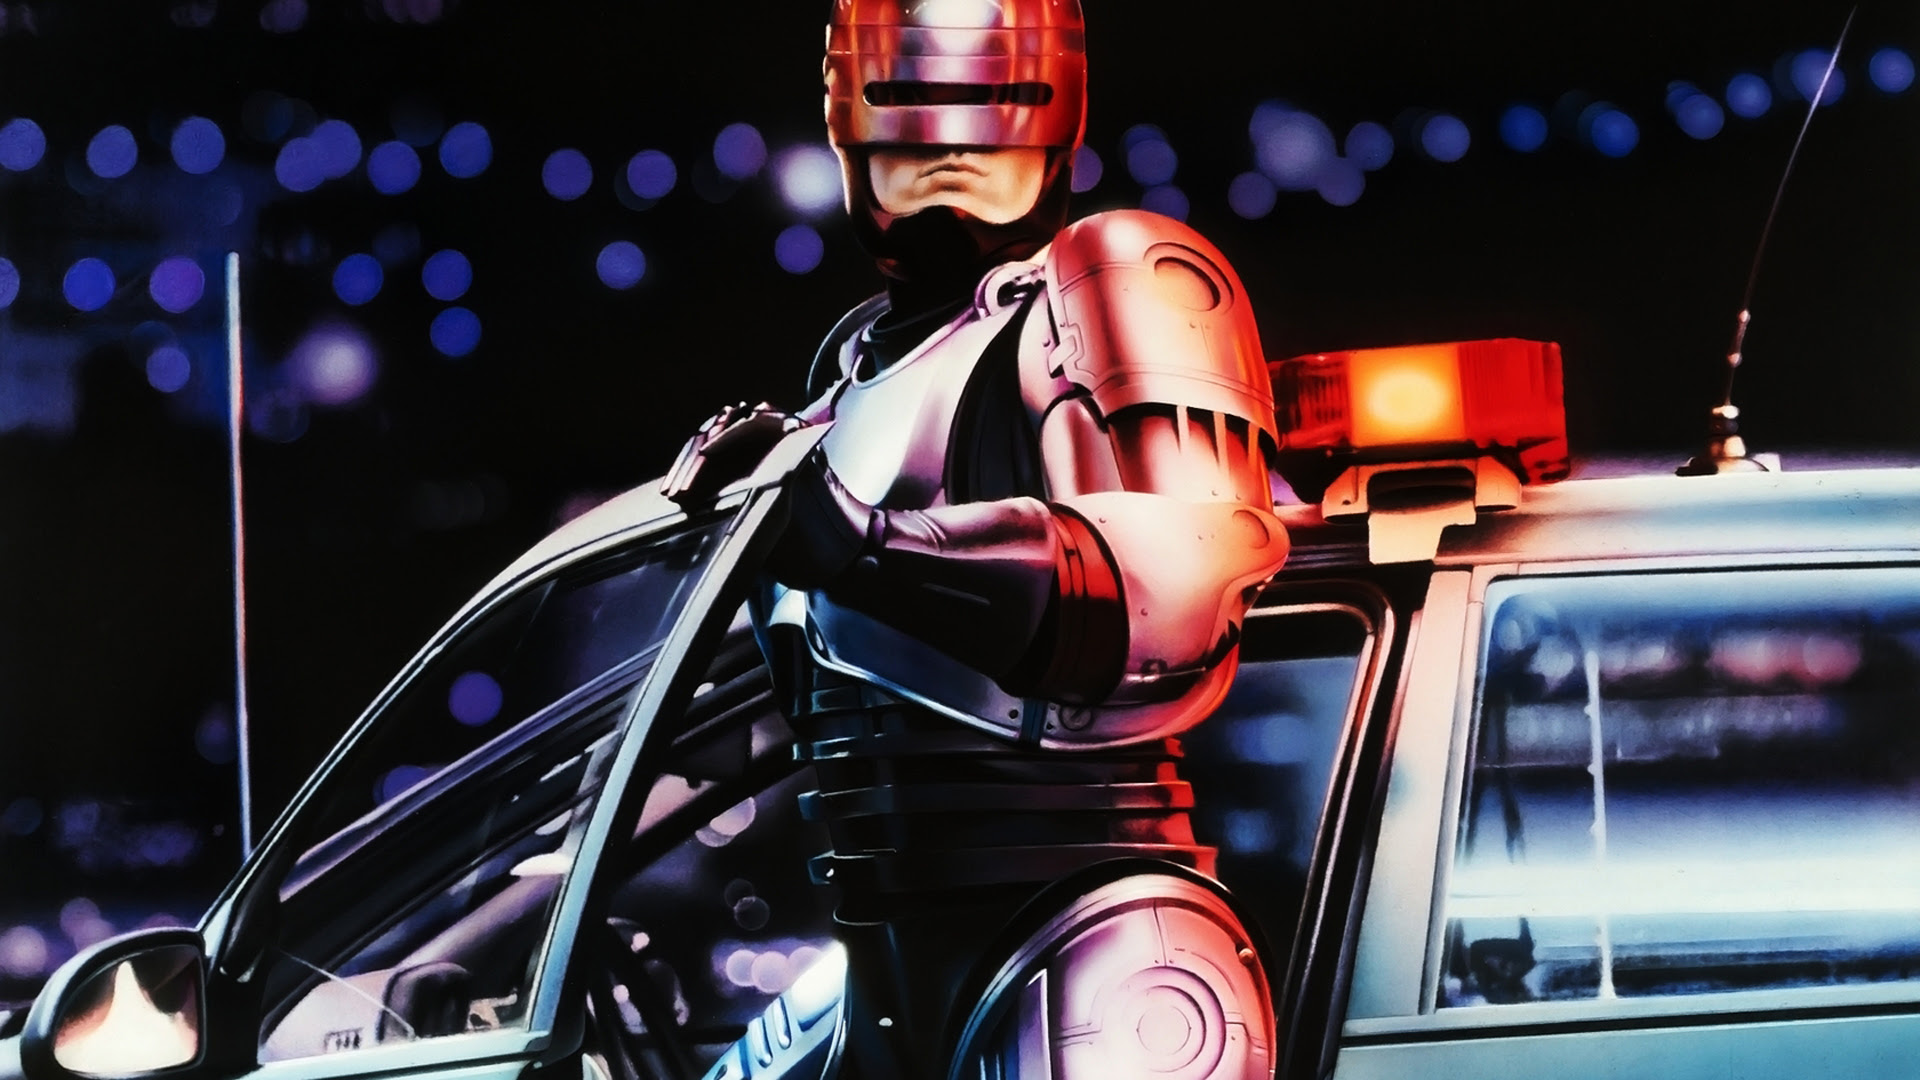 Wallpaper Hd Robocop